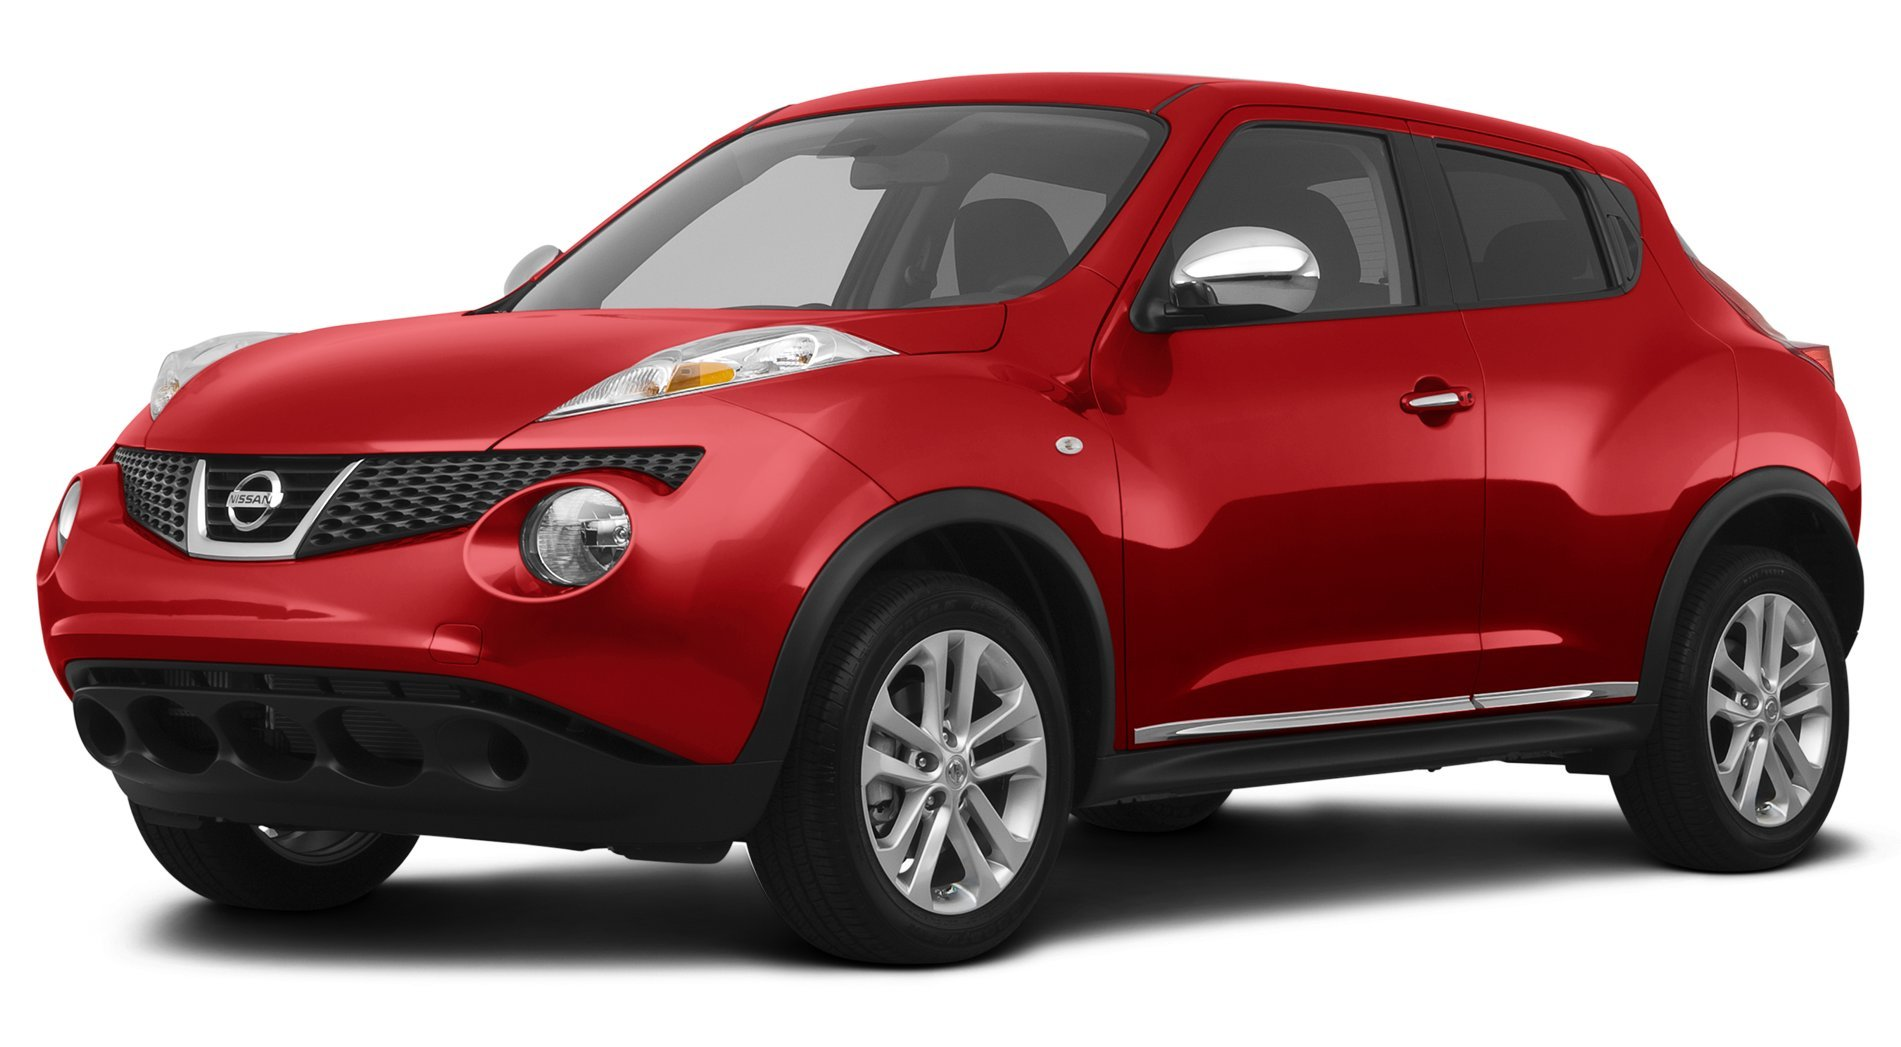 2012 nissan juke reviews images and specs vehicles. Black Bedroom Furniture Sets. Home Design Ideas